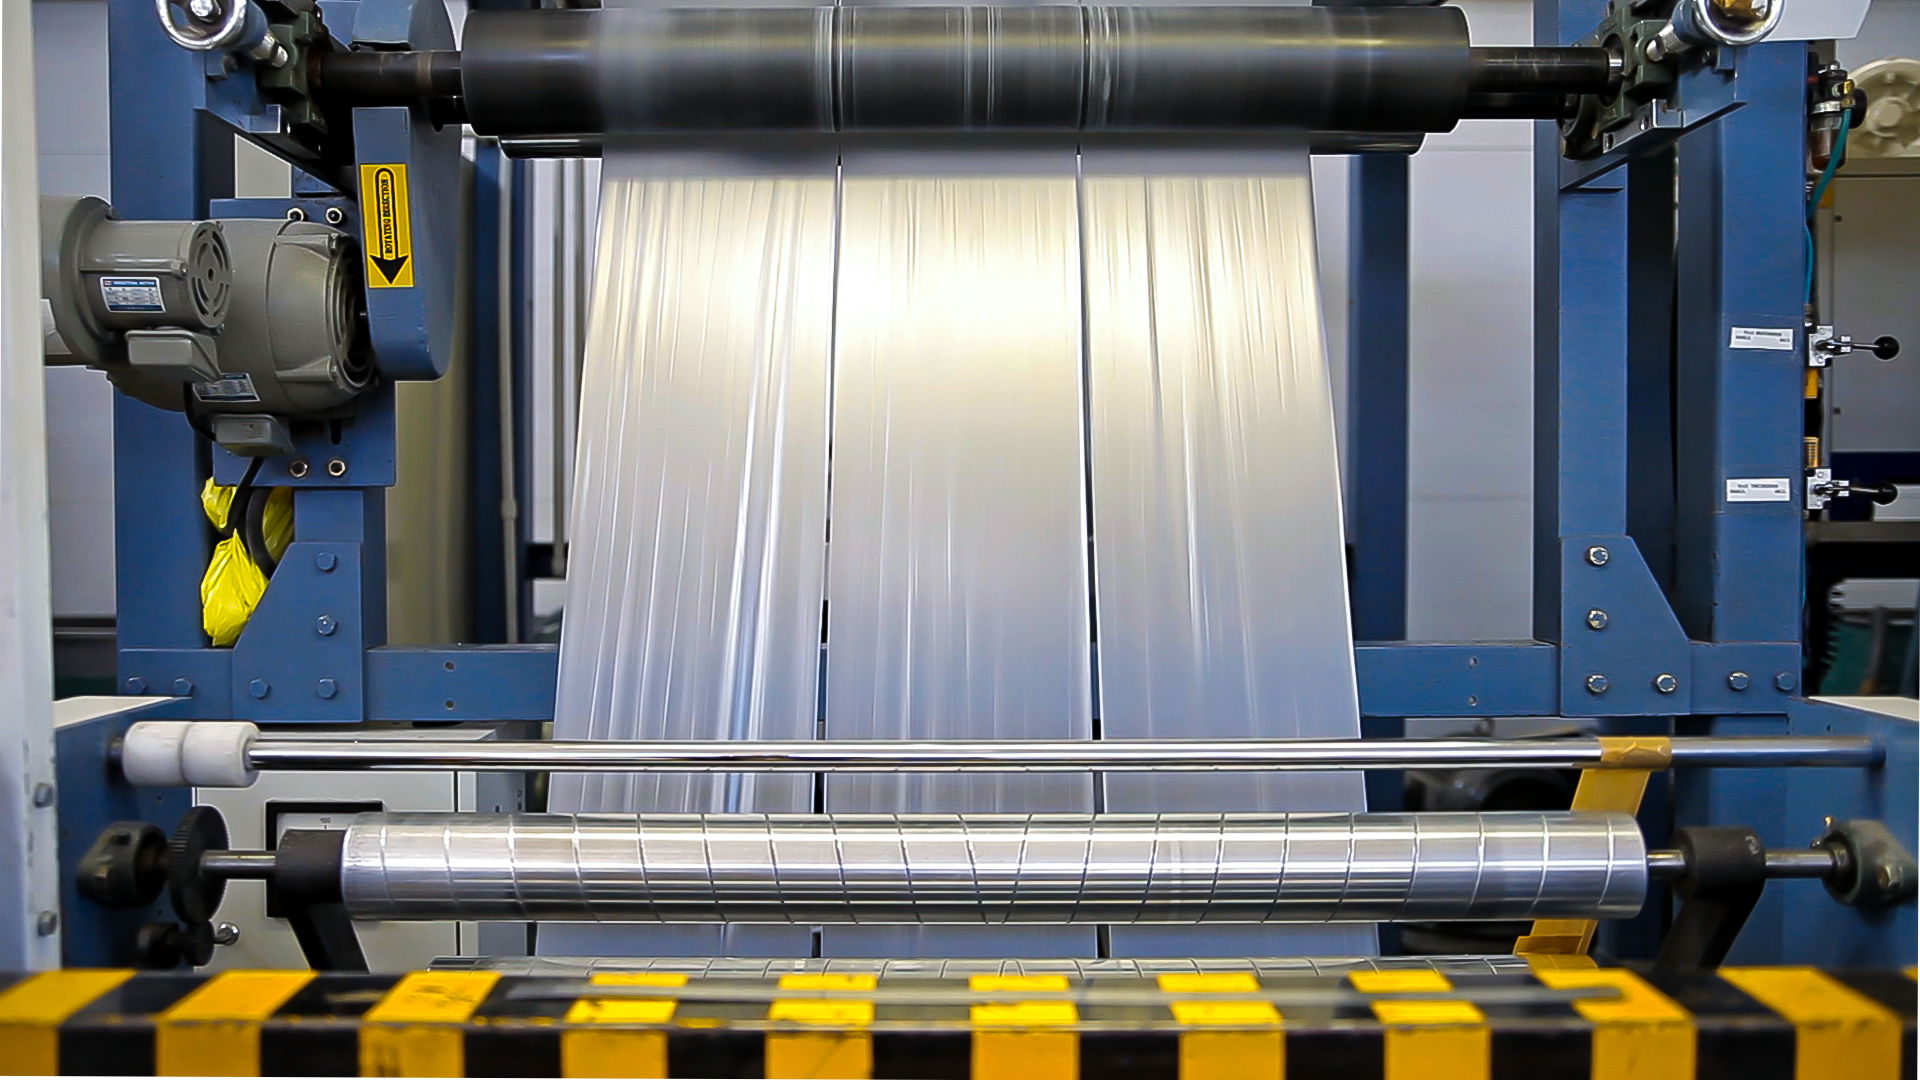 The Dangers of Missing Vital Surface Quality Information in Production